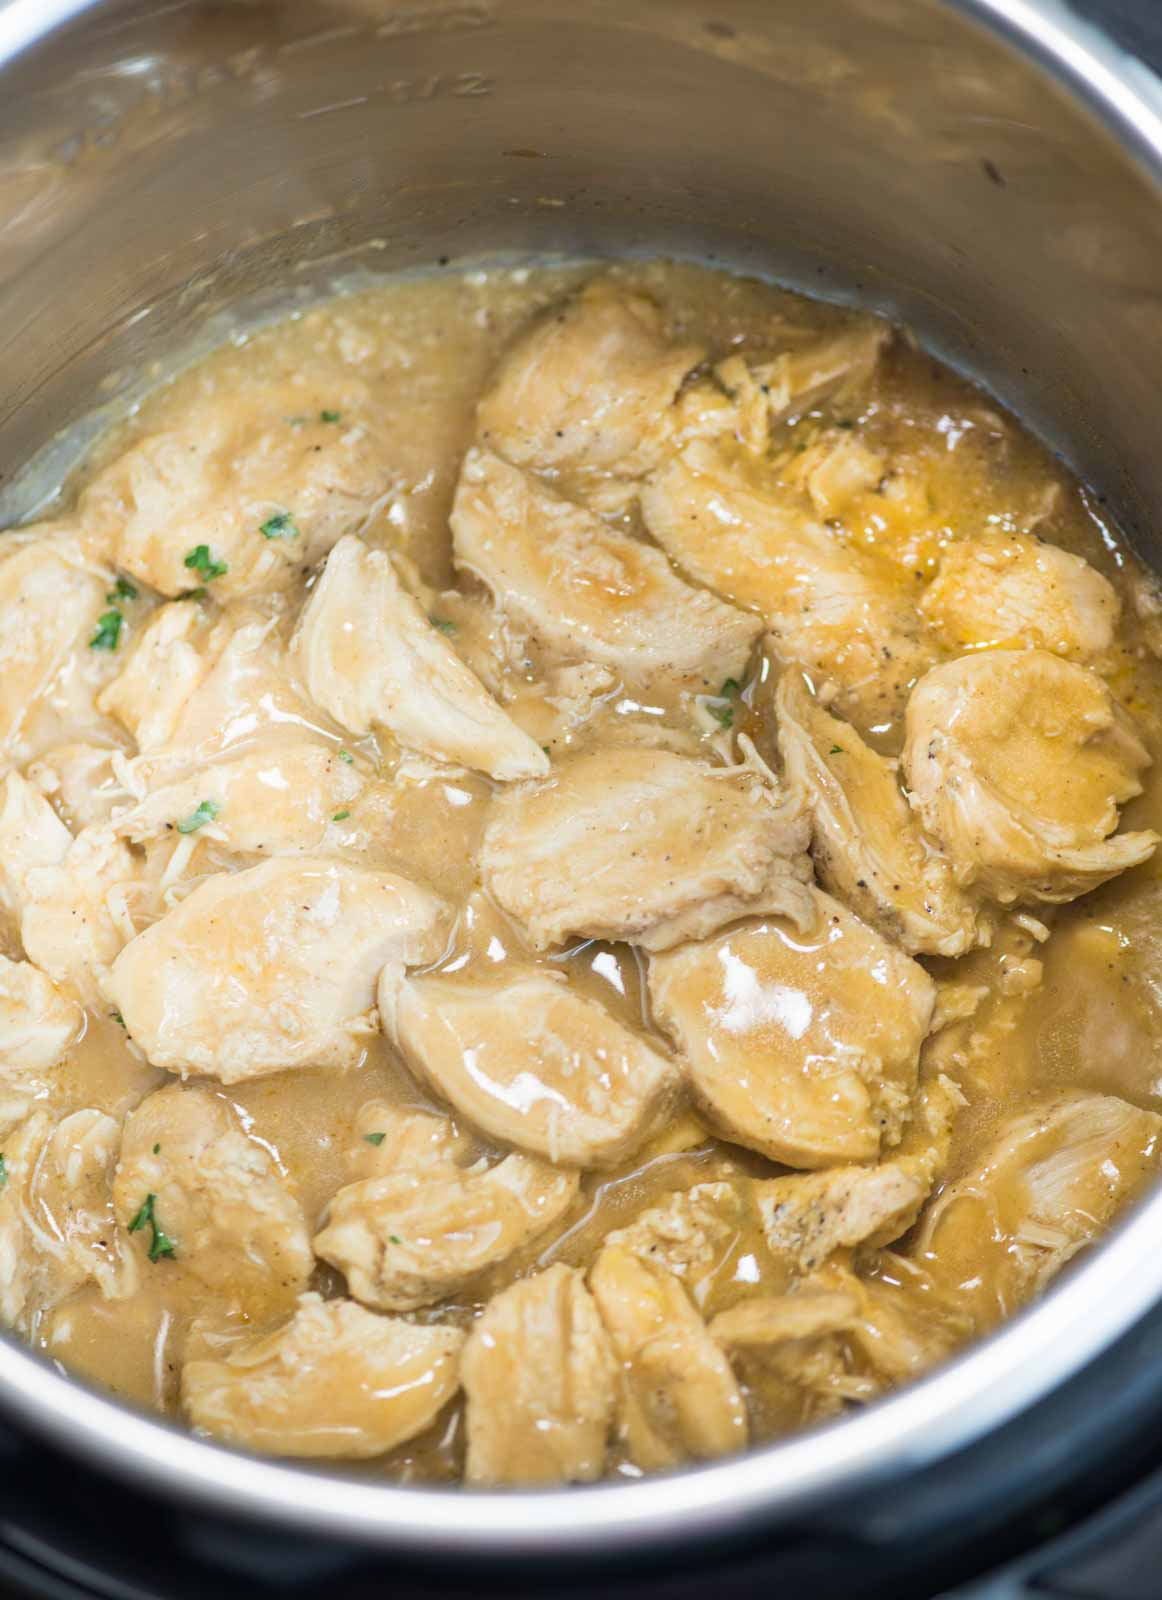 Chicken and gravy made in the Instant pot have tender chicken breast and creamy thick gravy made from scratch. Made totally from scratch without any gravy mix or canned soup mix.